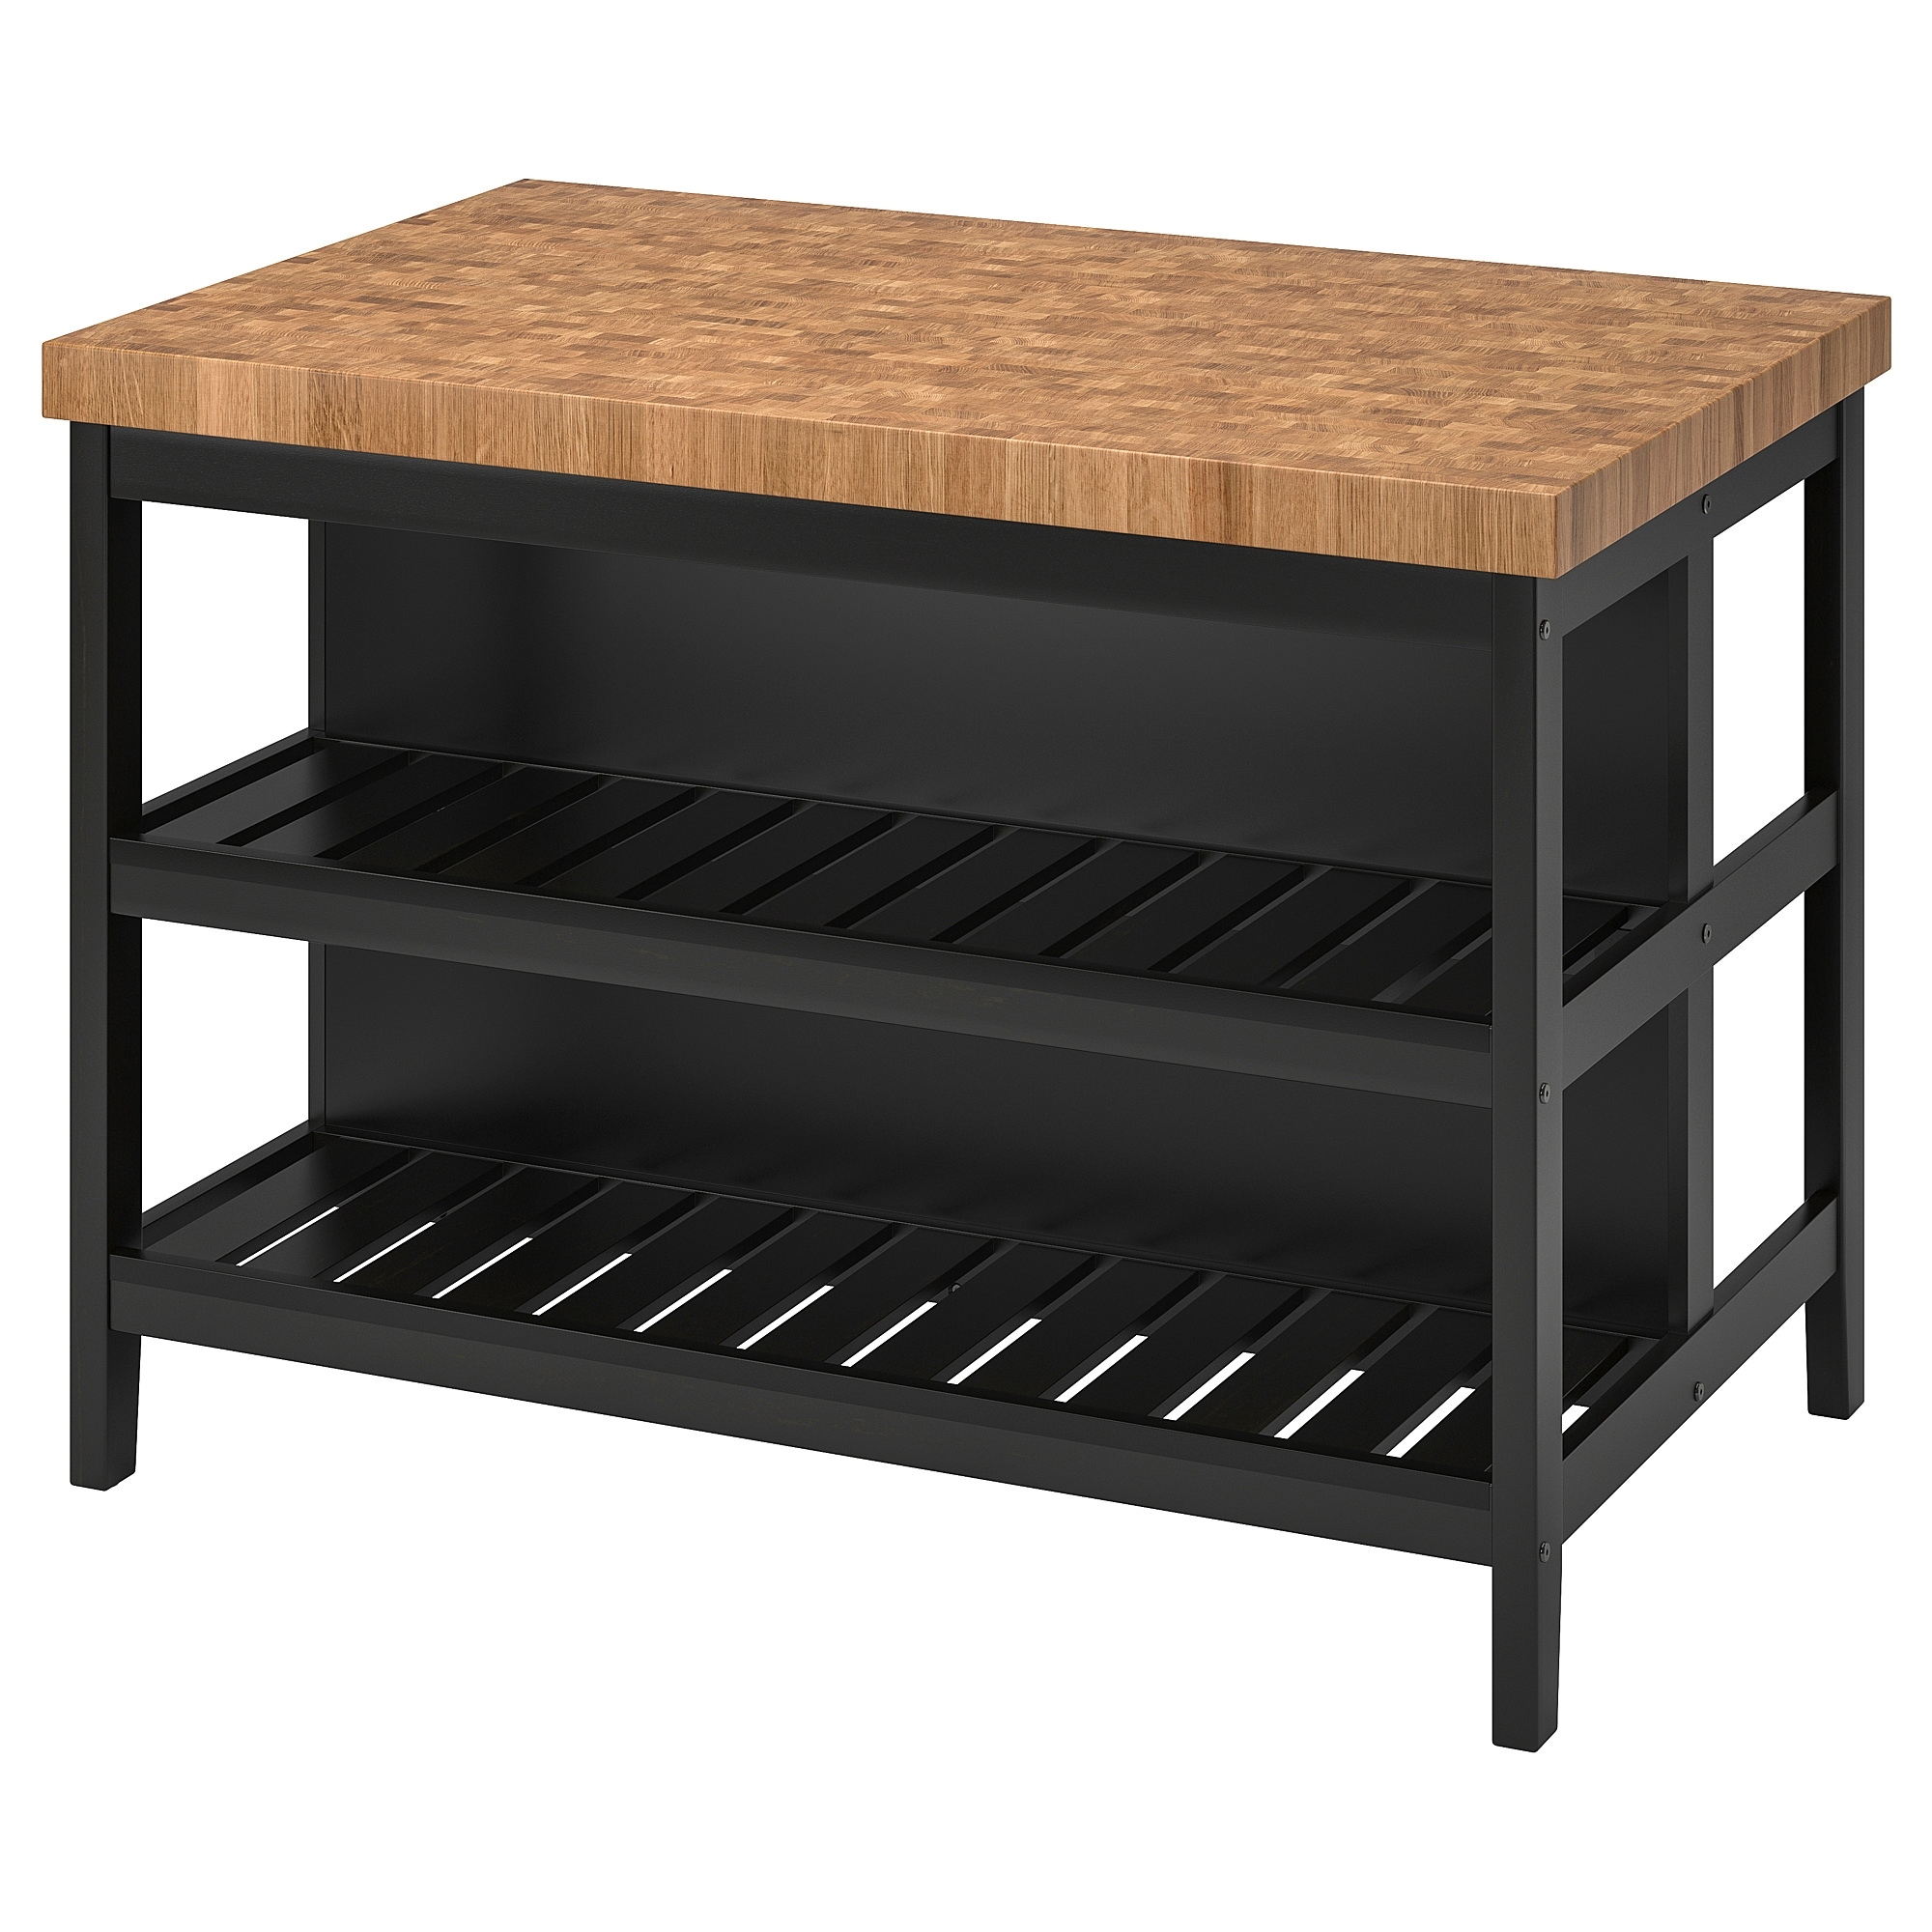 Ordinaire Kitchen Island VADHOLMA Black, Oak